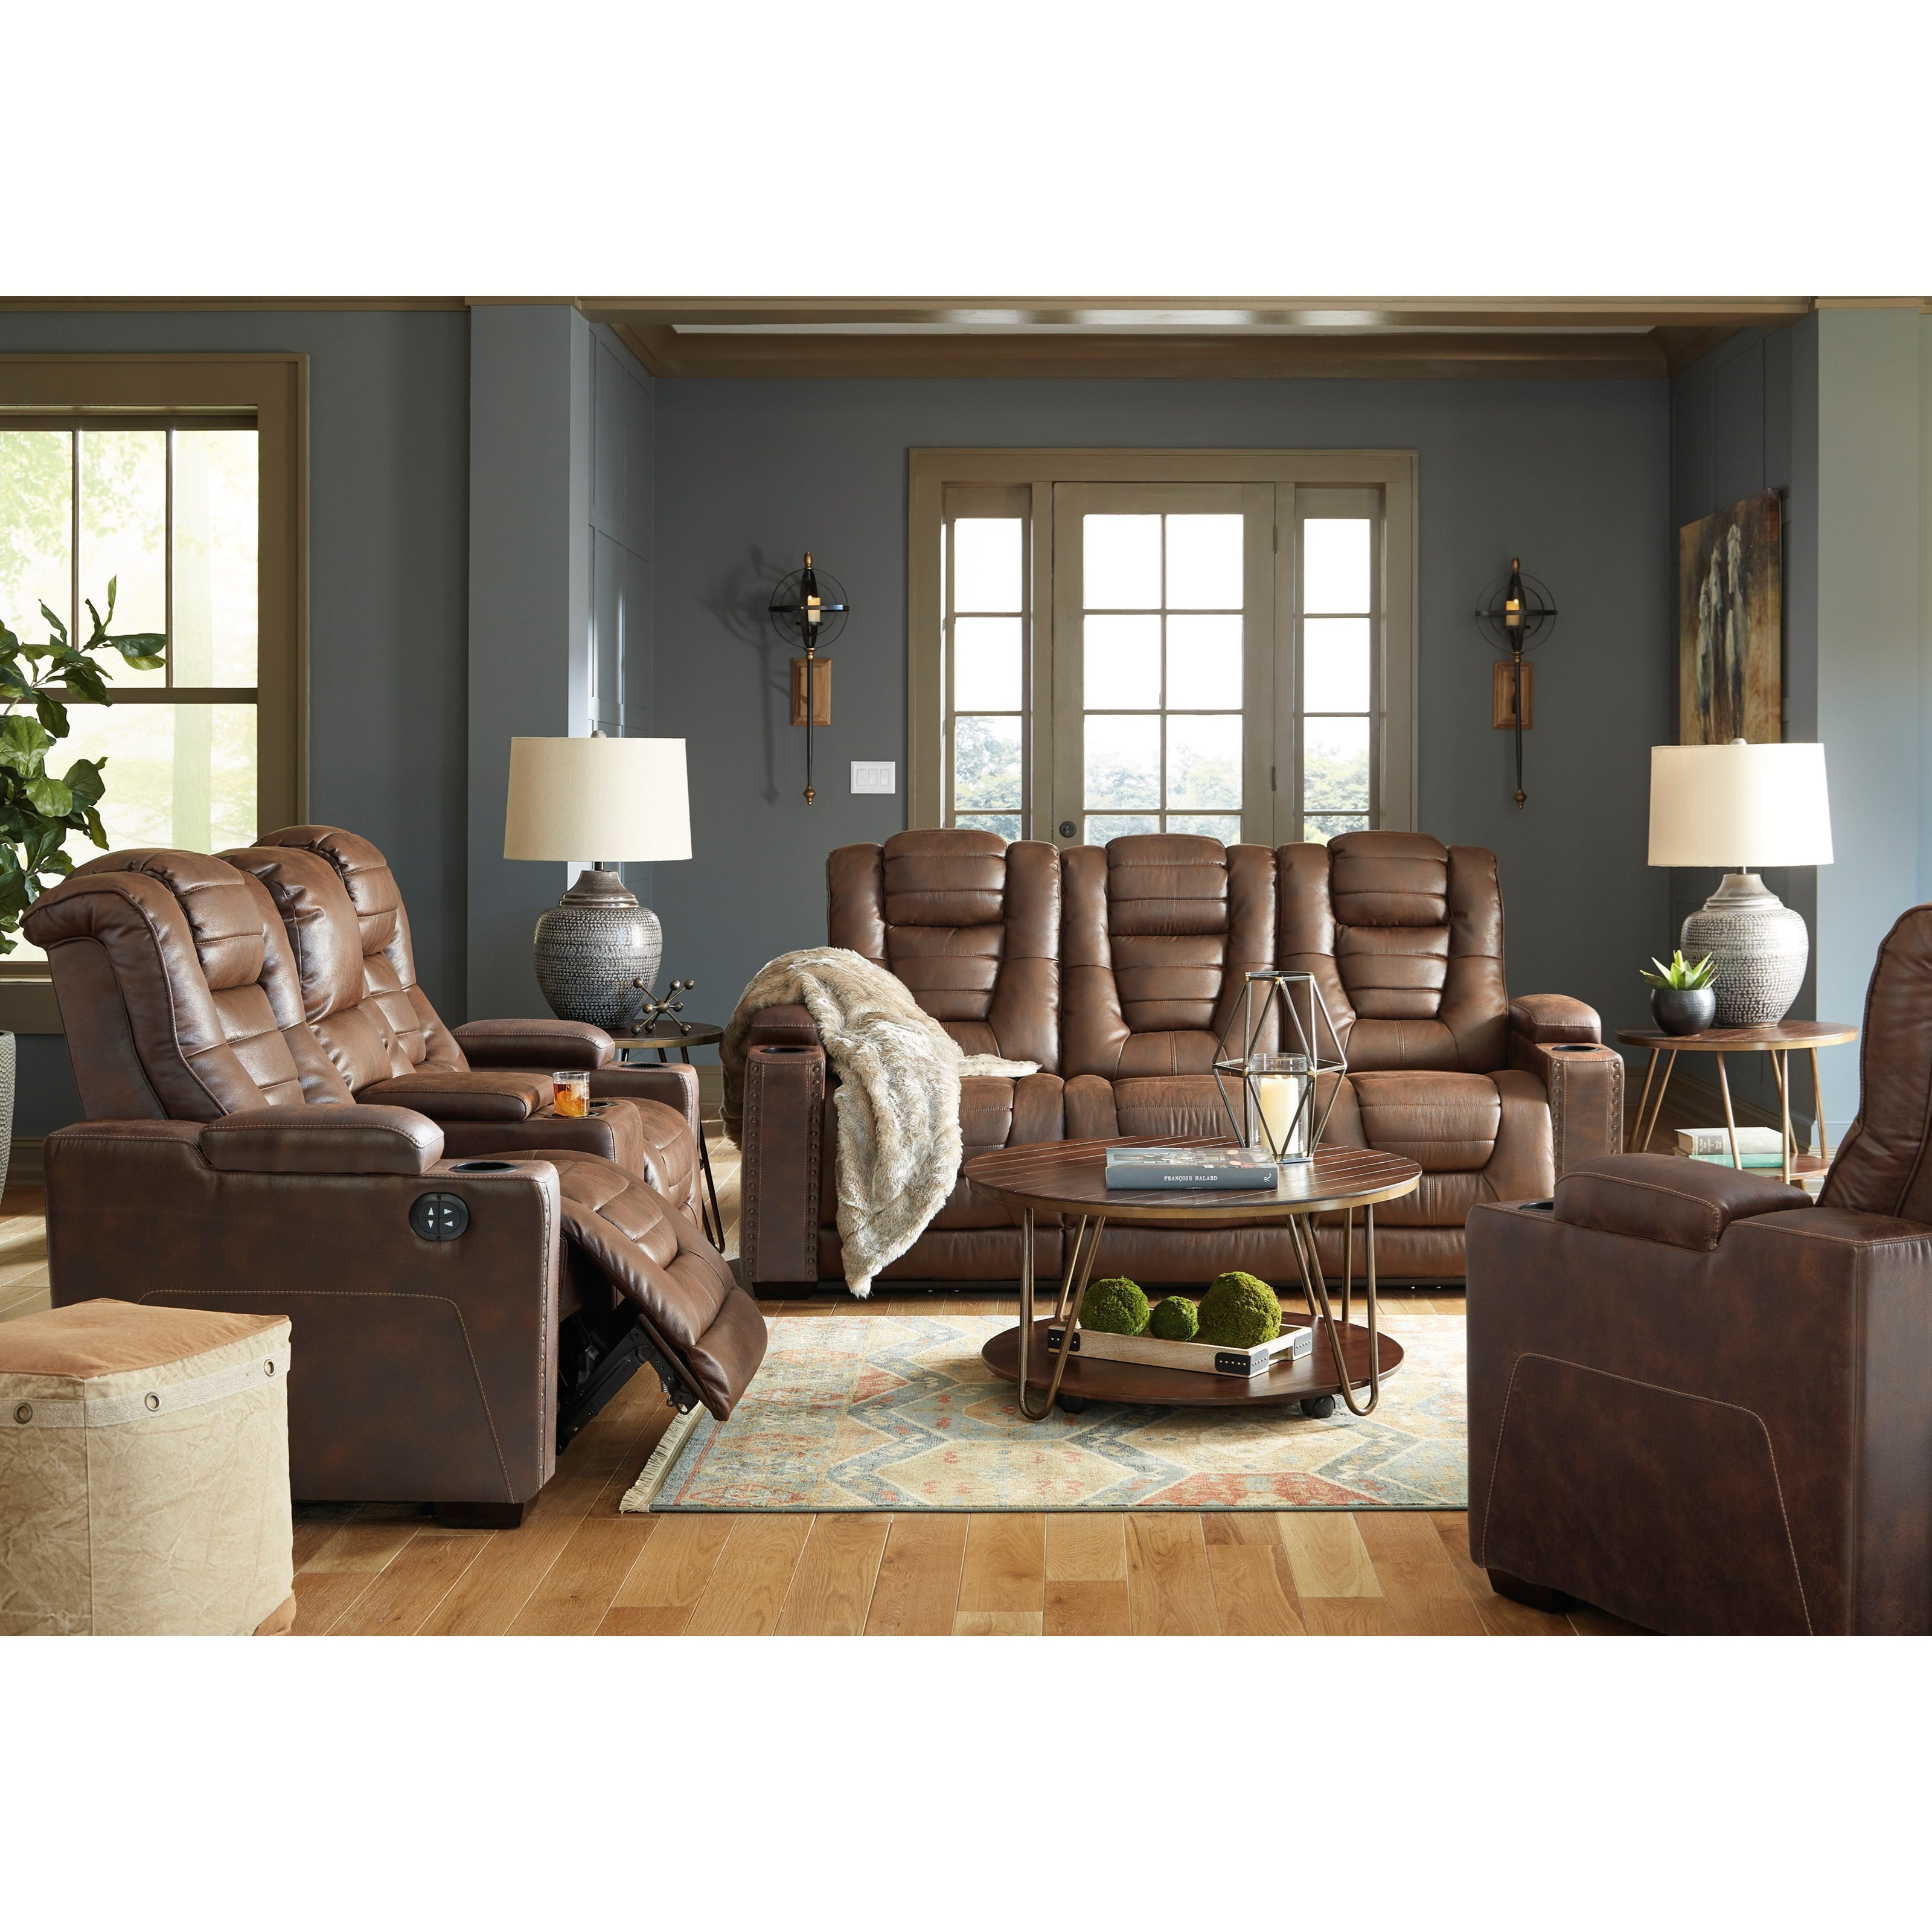 Owner's Box Power Reclining Living Room Group by Signature Design by Ashley at Zak's Warehouse Clearance Center